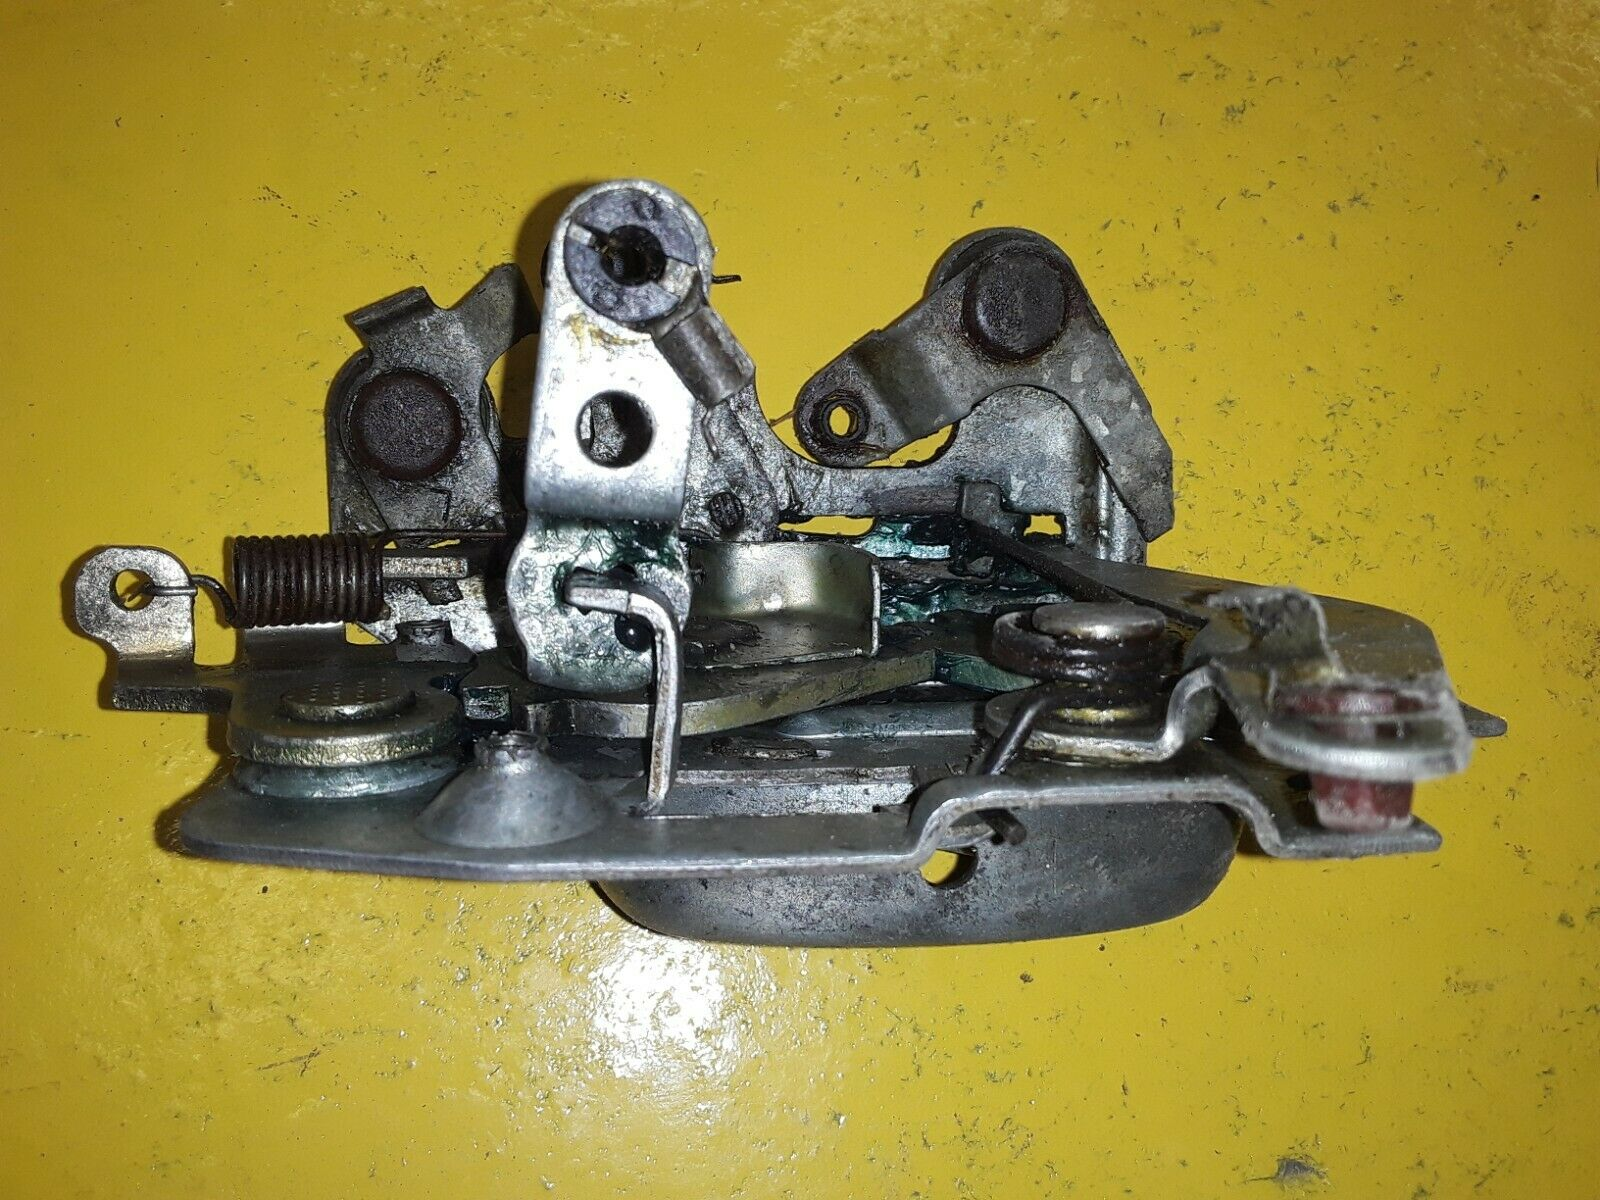 1968-69 FAIRLANE TORINO DRIVER DOOR LATCH ASSEMBLY NO PART NUMBER VISIBLE